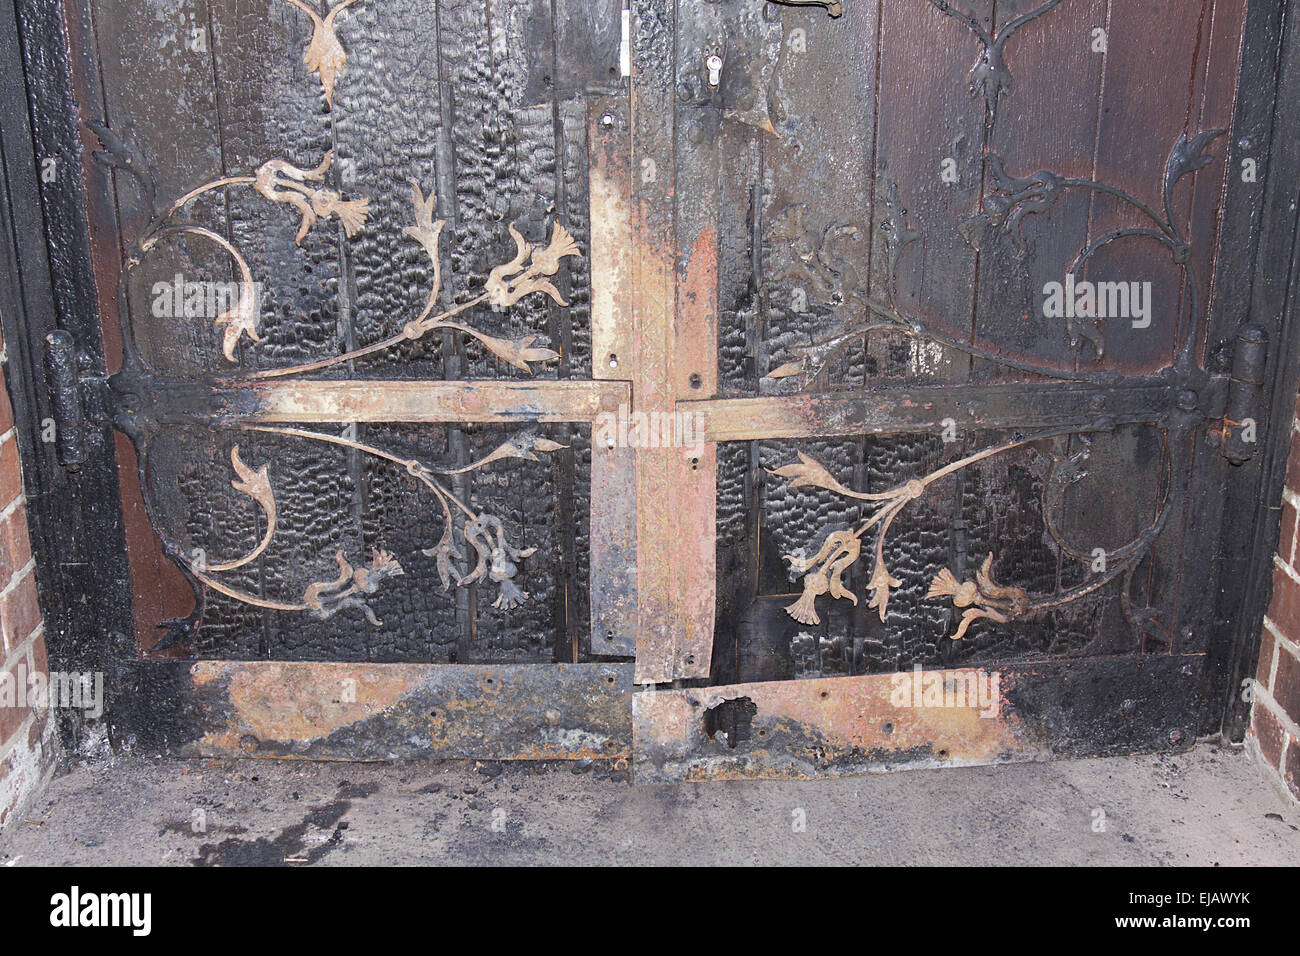 Arson Attack - Stock Image